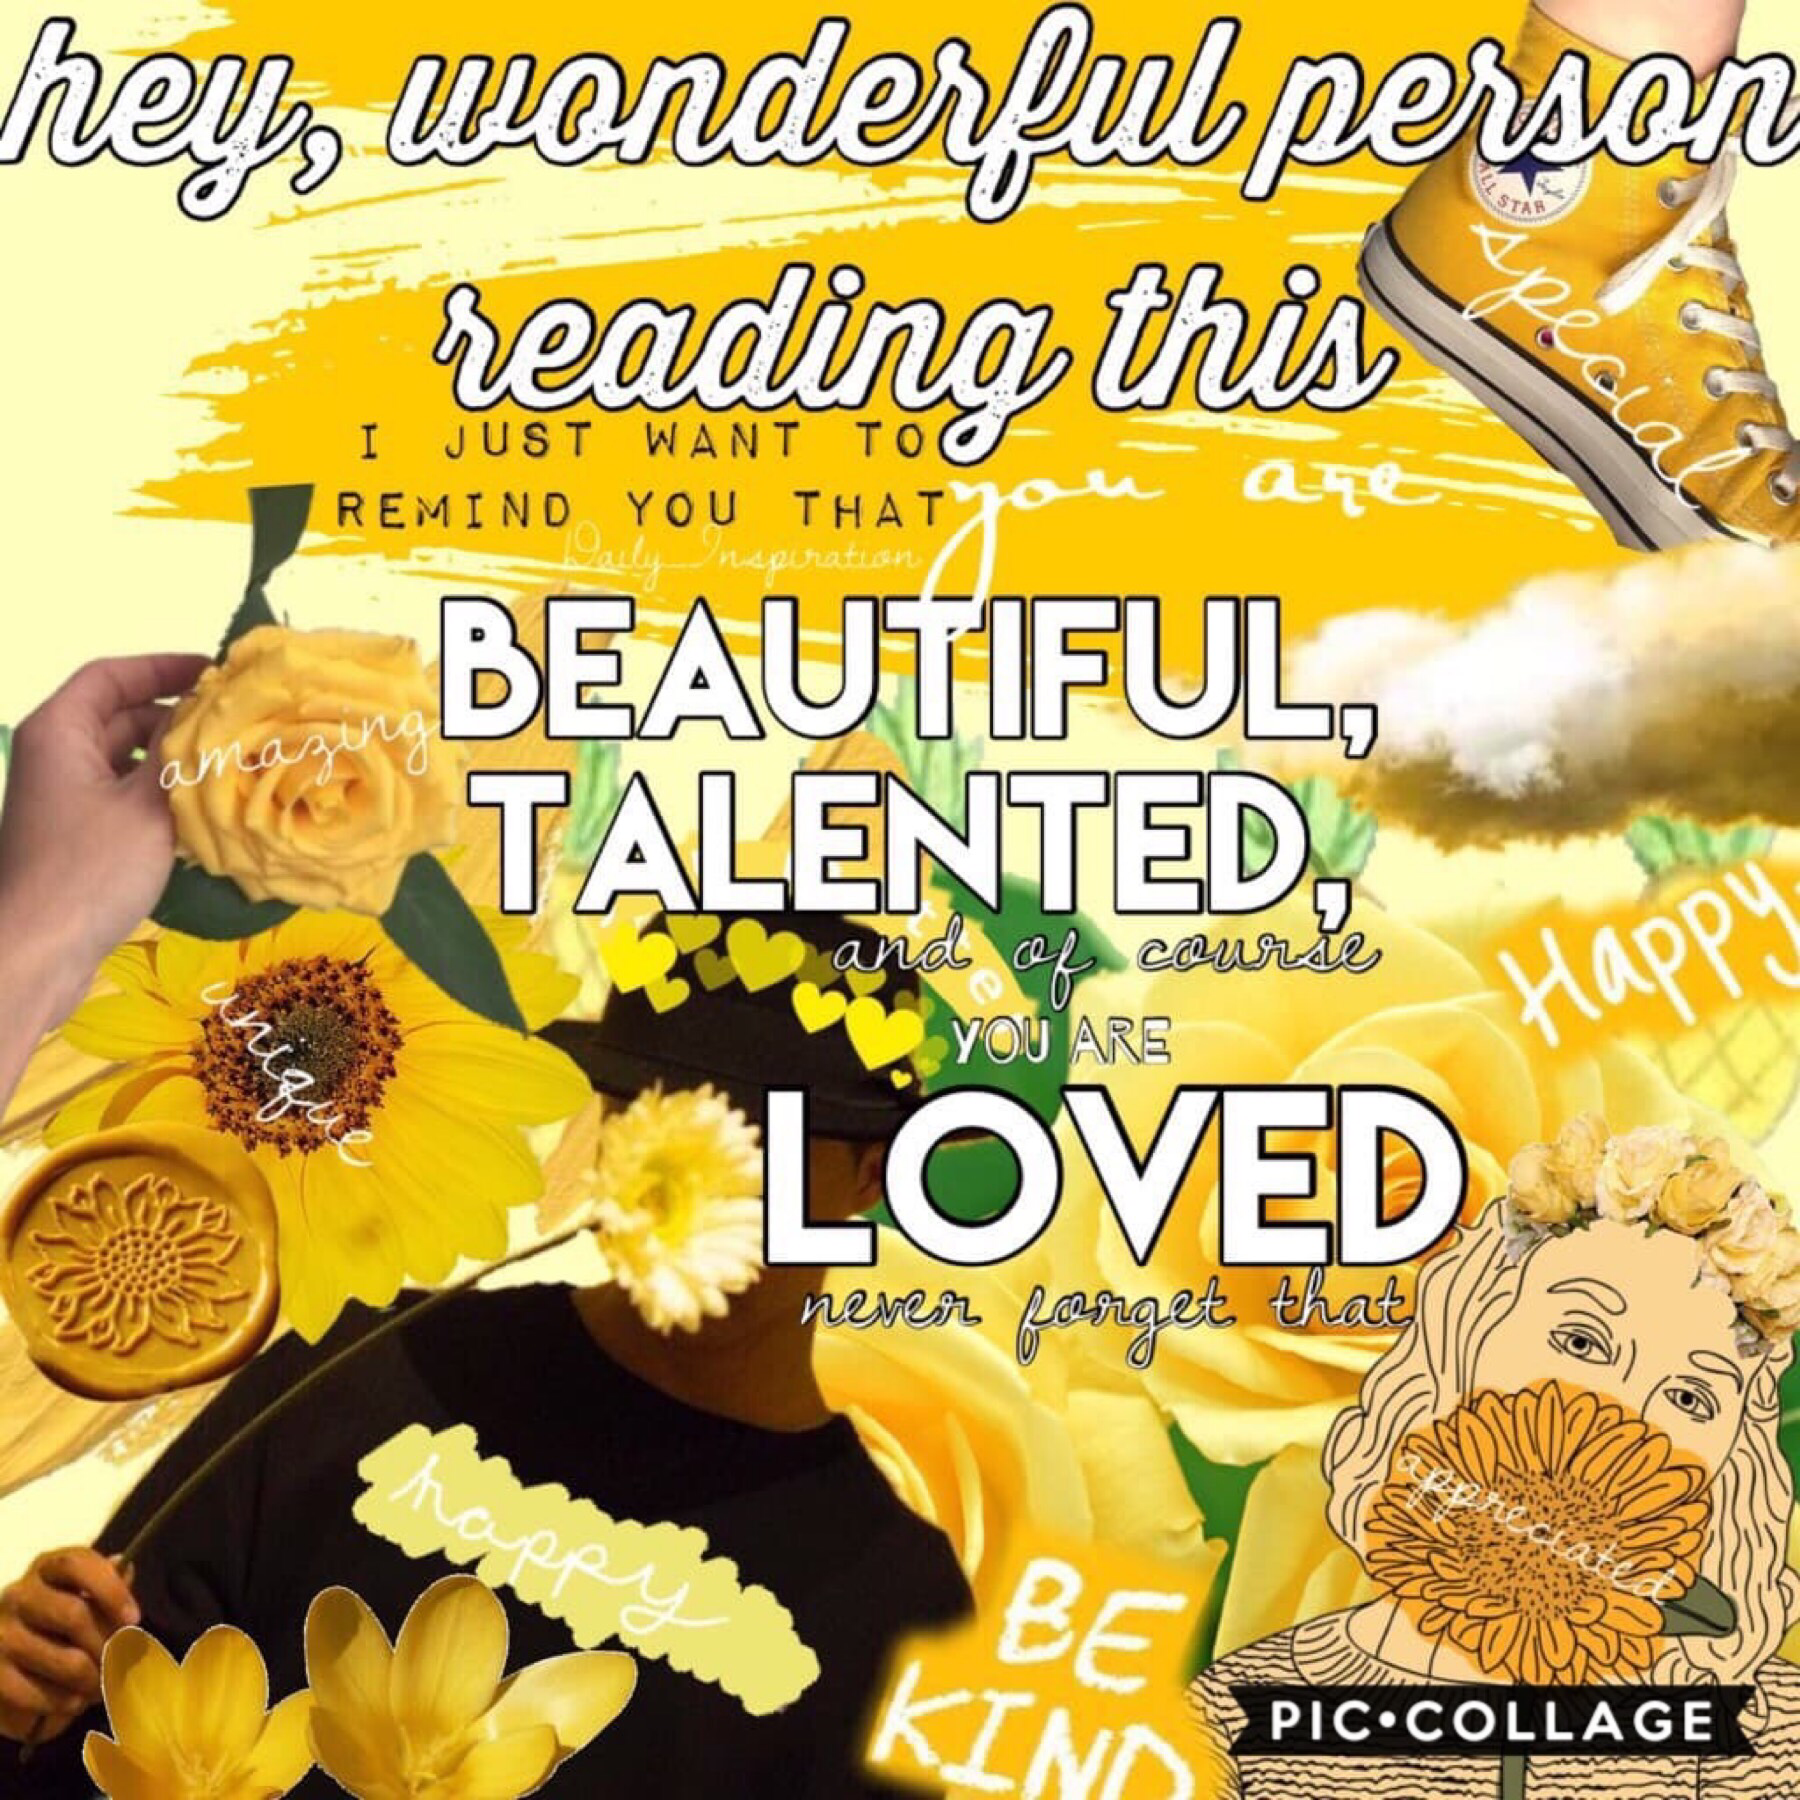 ✨Tap✨ Hey y'all it's been awhile. I hope y'all are doing well. I don't even know where to start... my life has been crazy busy recently. Anyway, I made this collage awhile ago and never posted it... enjoy💕😚 - -ebullience- 9/21/19